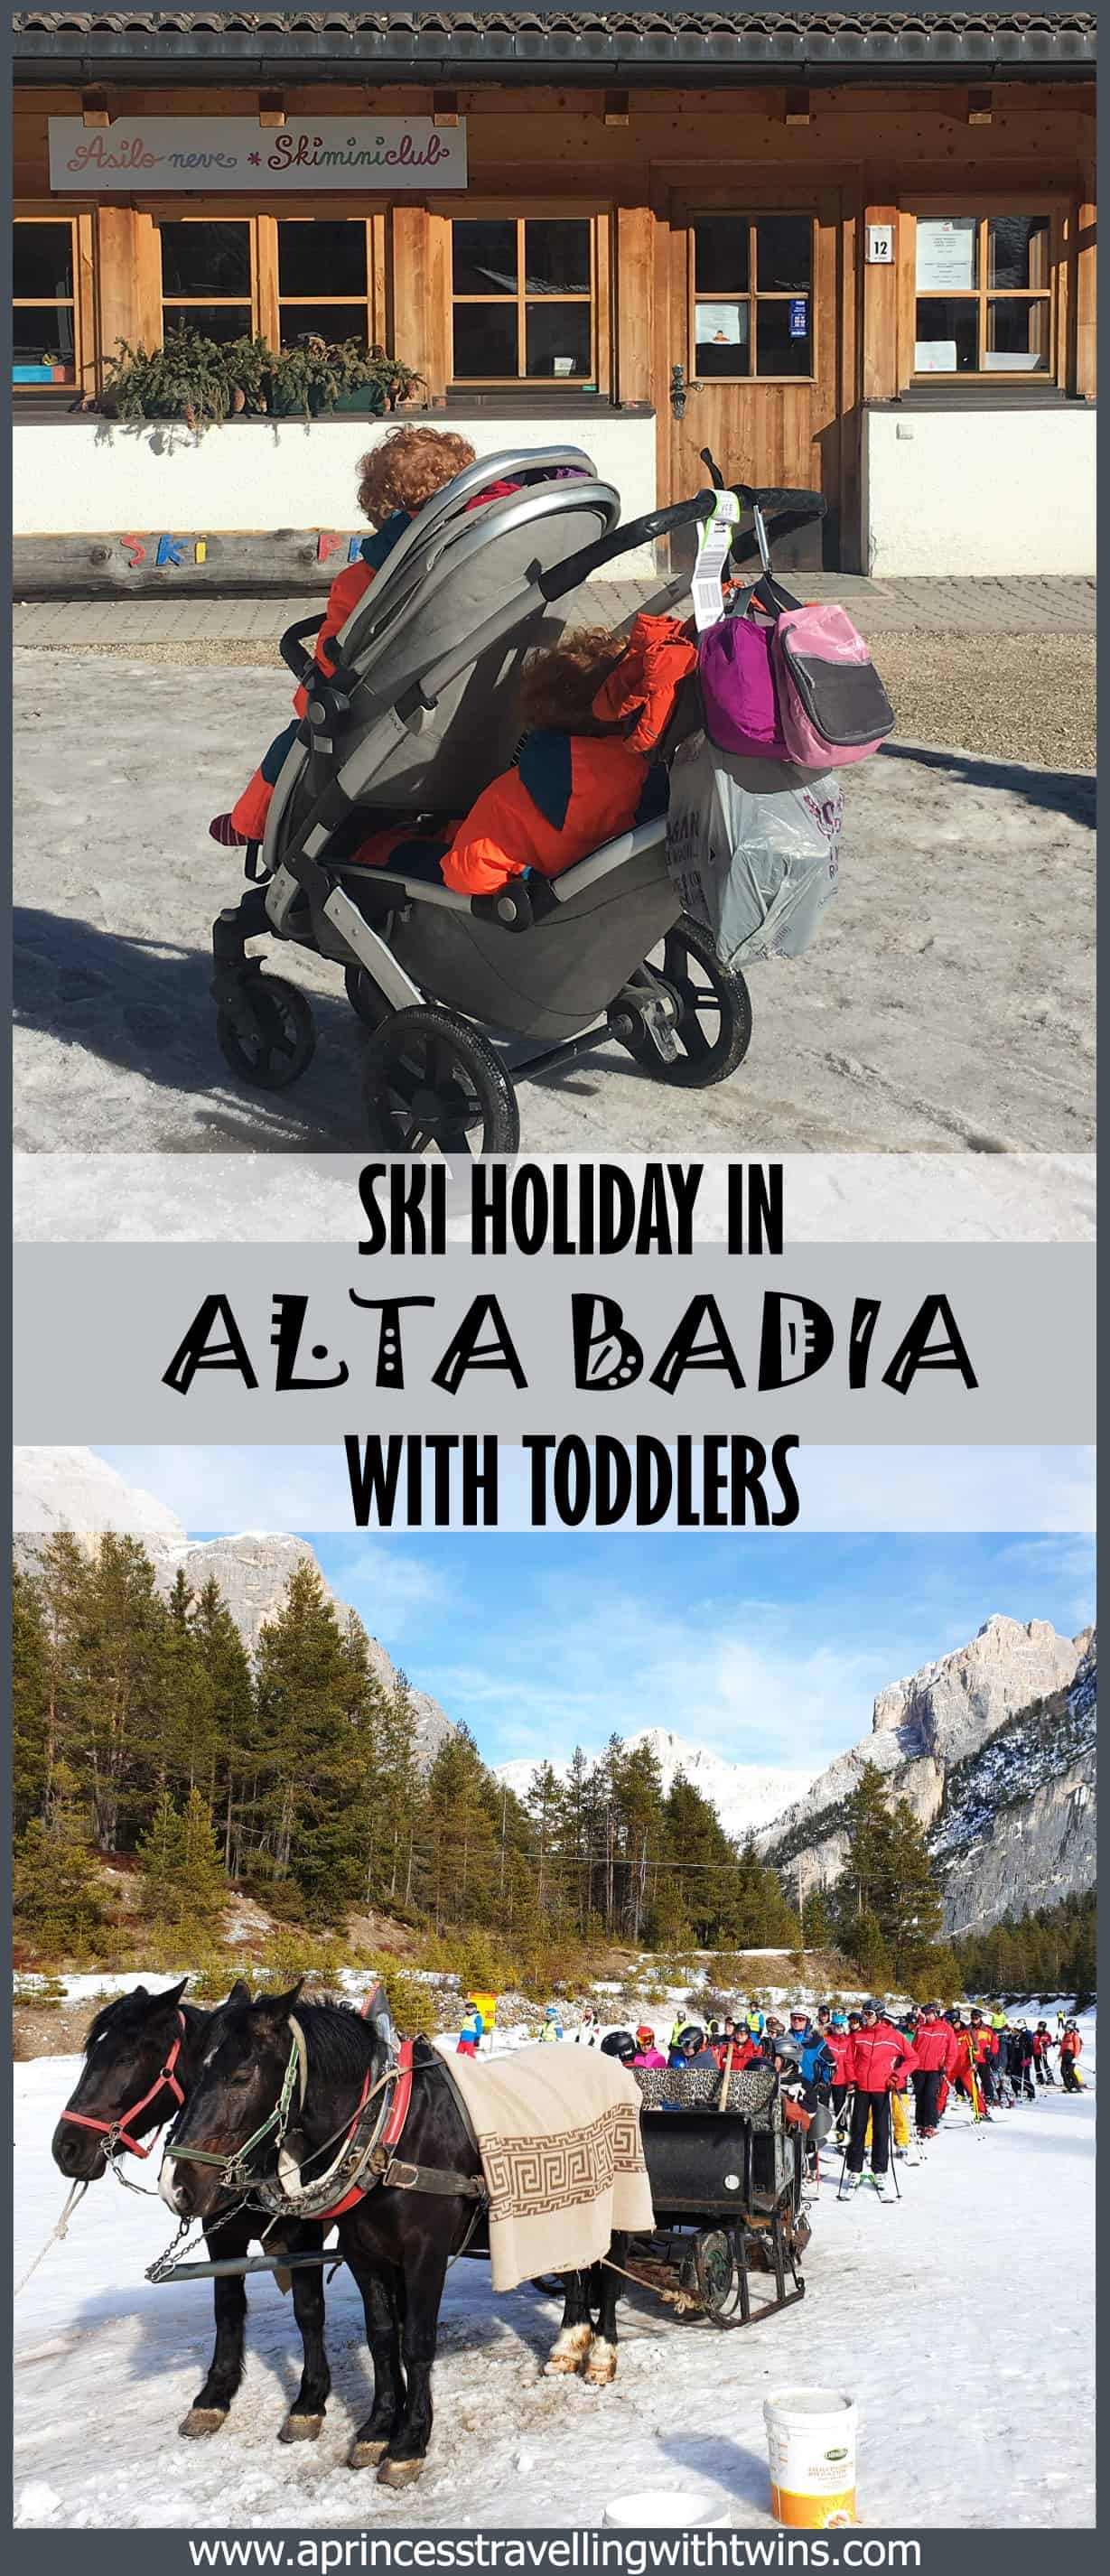 Alta Badia is the perfect place to go on a ski holiday even if you have toddlers. Facilities are super and the ski resort is so big that you can ski everyday on a different slope. Have a look at my suggestion about where to ski, where to eat on the slopes and all the practicalities if you have kids.